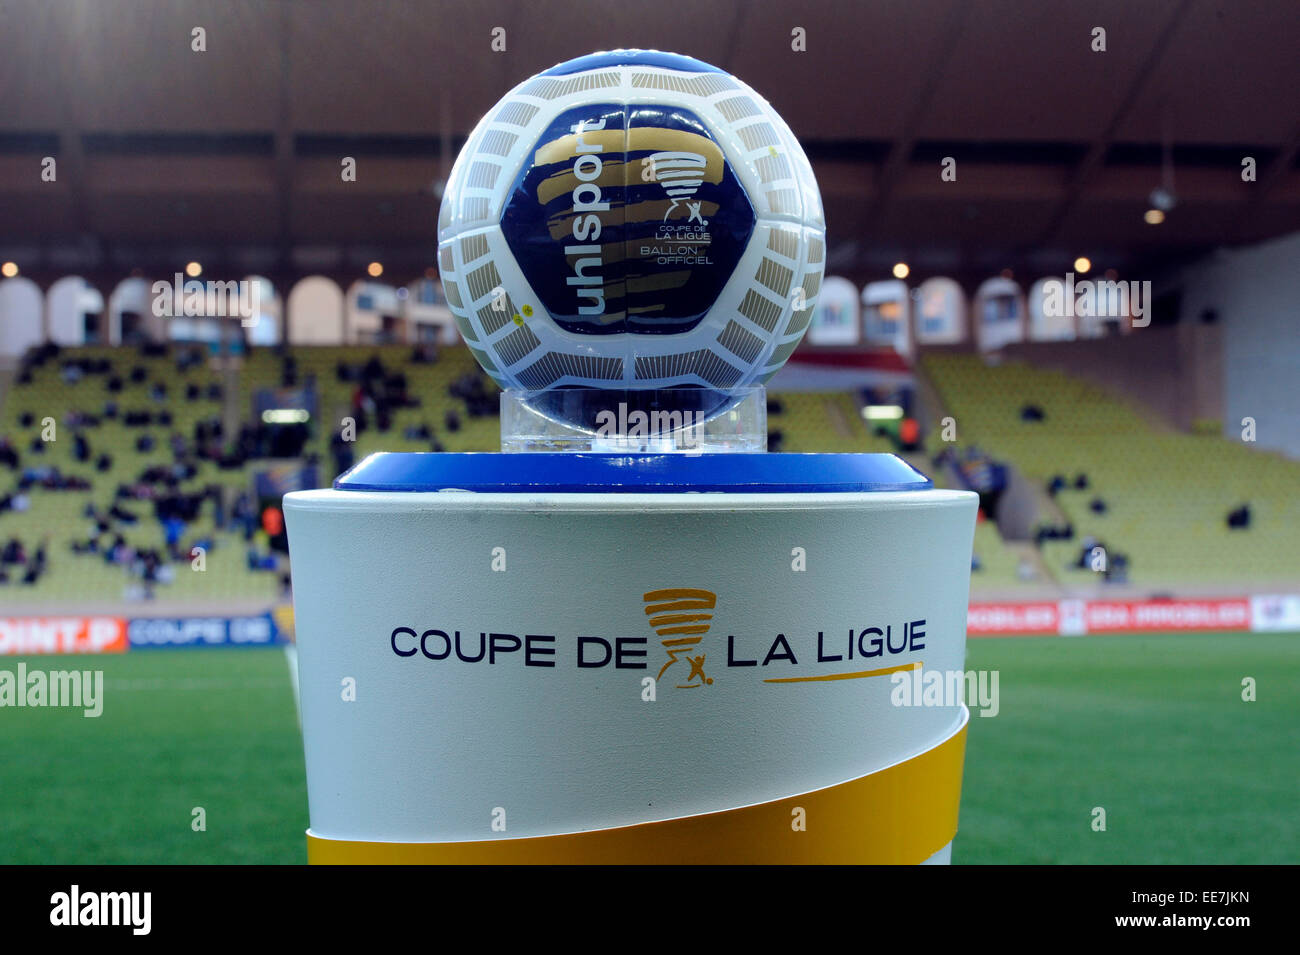 Monaco france 14th jan 2015 french league cup coupe de la ligue stock photo royalty free - Billetterie coupe de la ligue 2015 ...